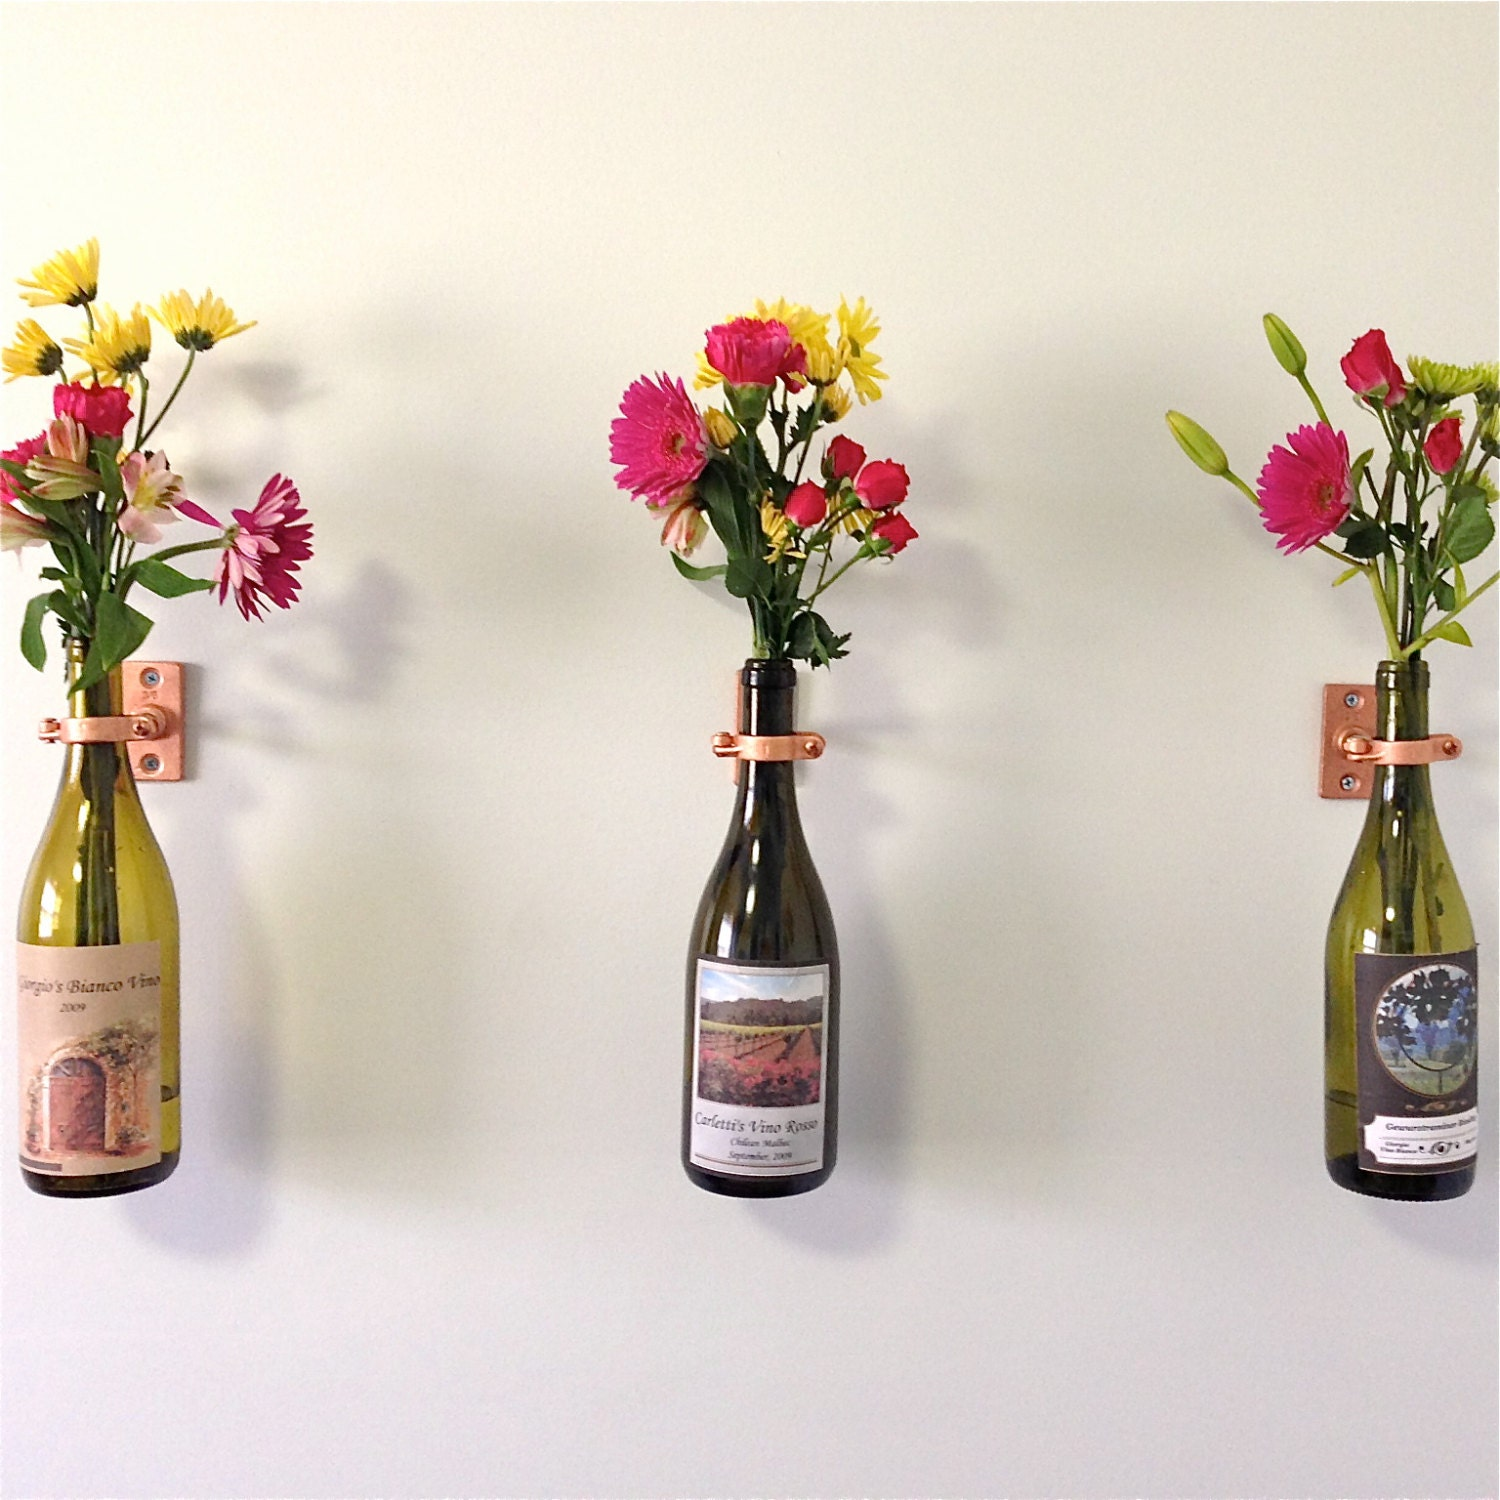 Wall vases for flowers - Check Out Our Oil Lamps And Tiki Torches Greatbottlesoffire Etsy Com Hardware Only 2 Wine Bottle Wall Flower Vase